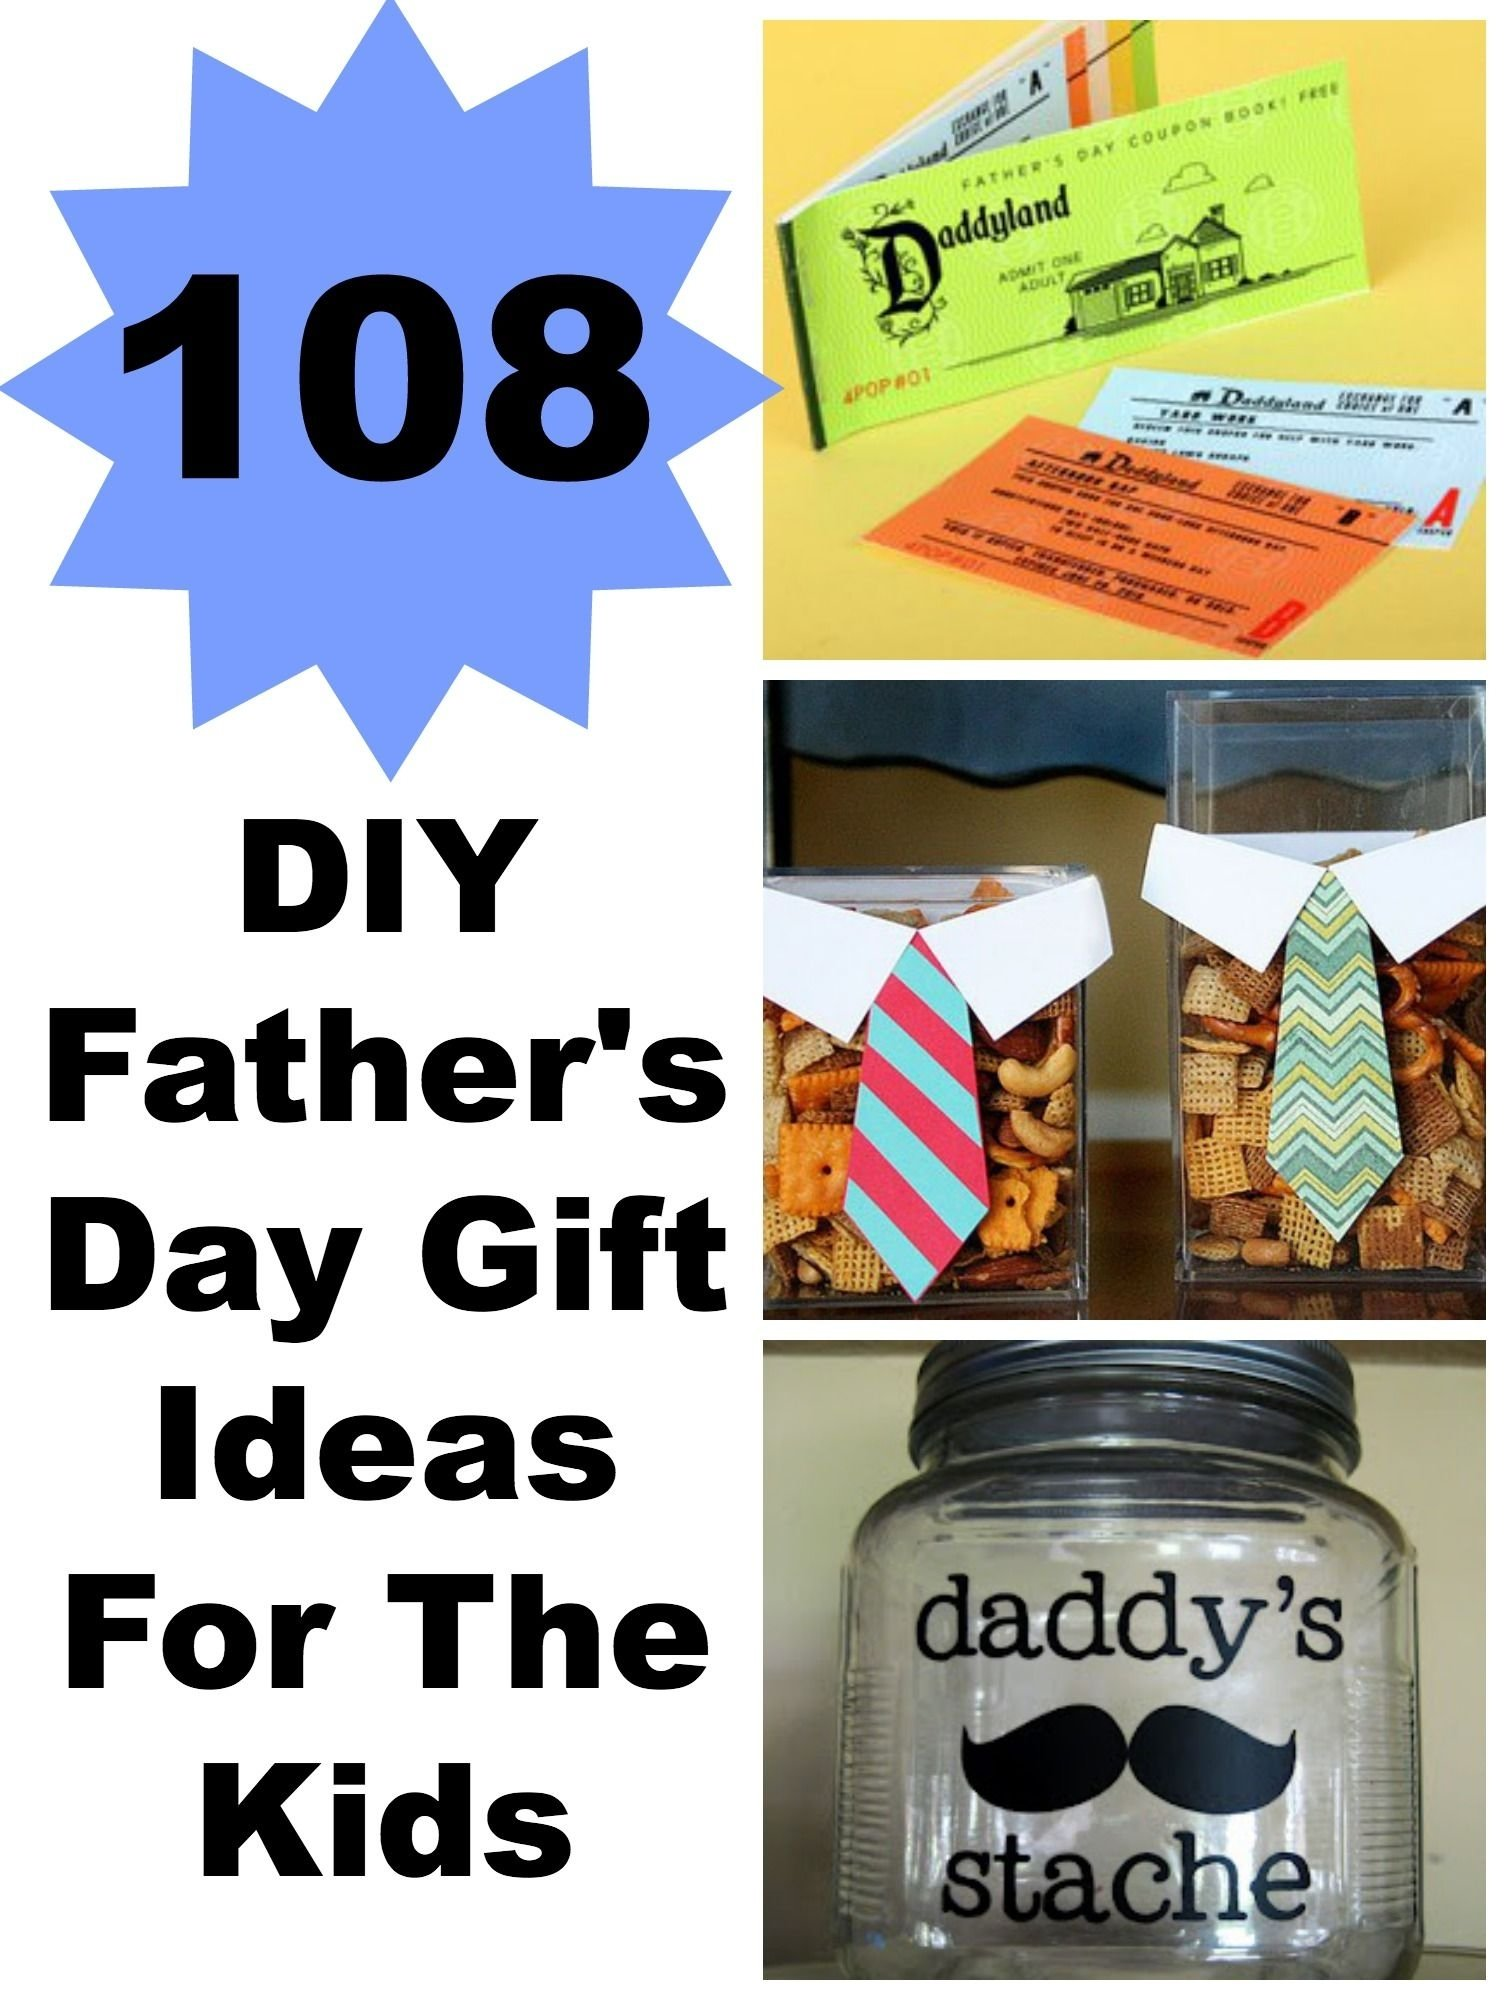 10 Stylish Homemade Fathers Day Gift Ideas 108 diy fathers day gift ideas for the kids easy diy projects 1 2020